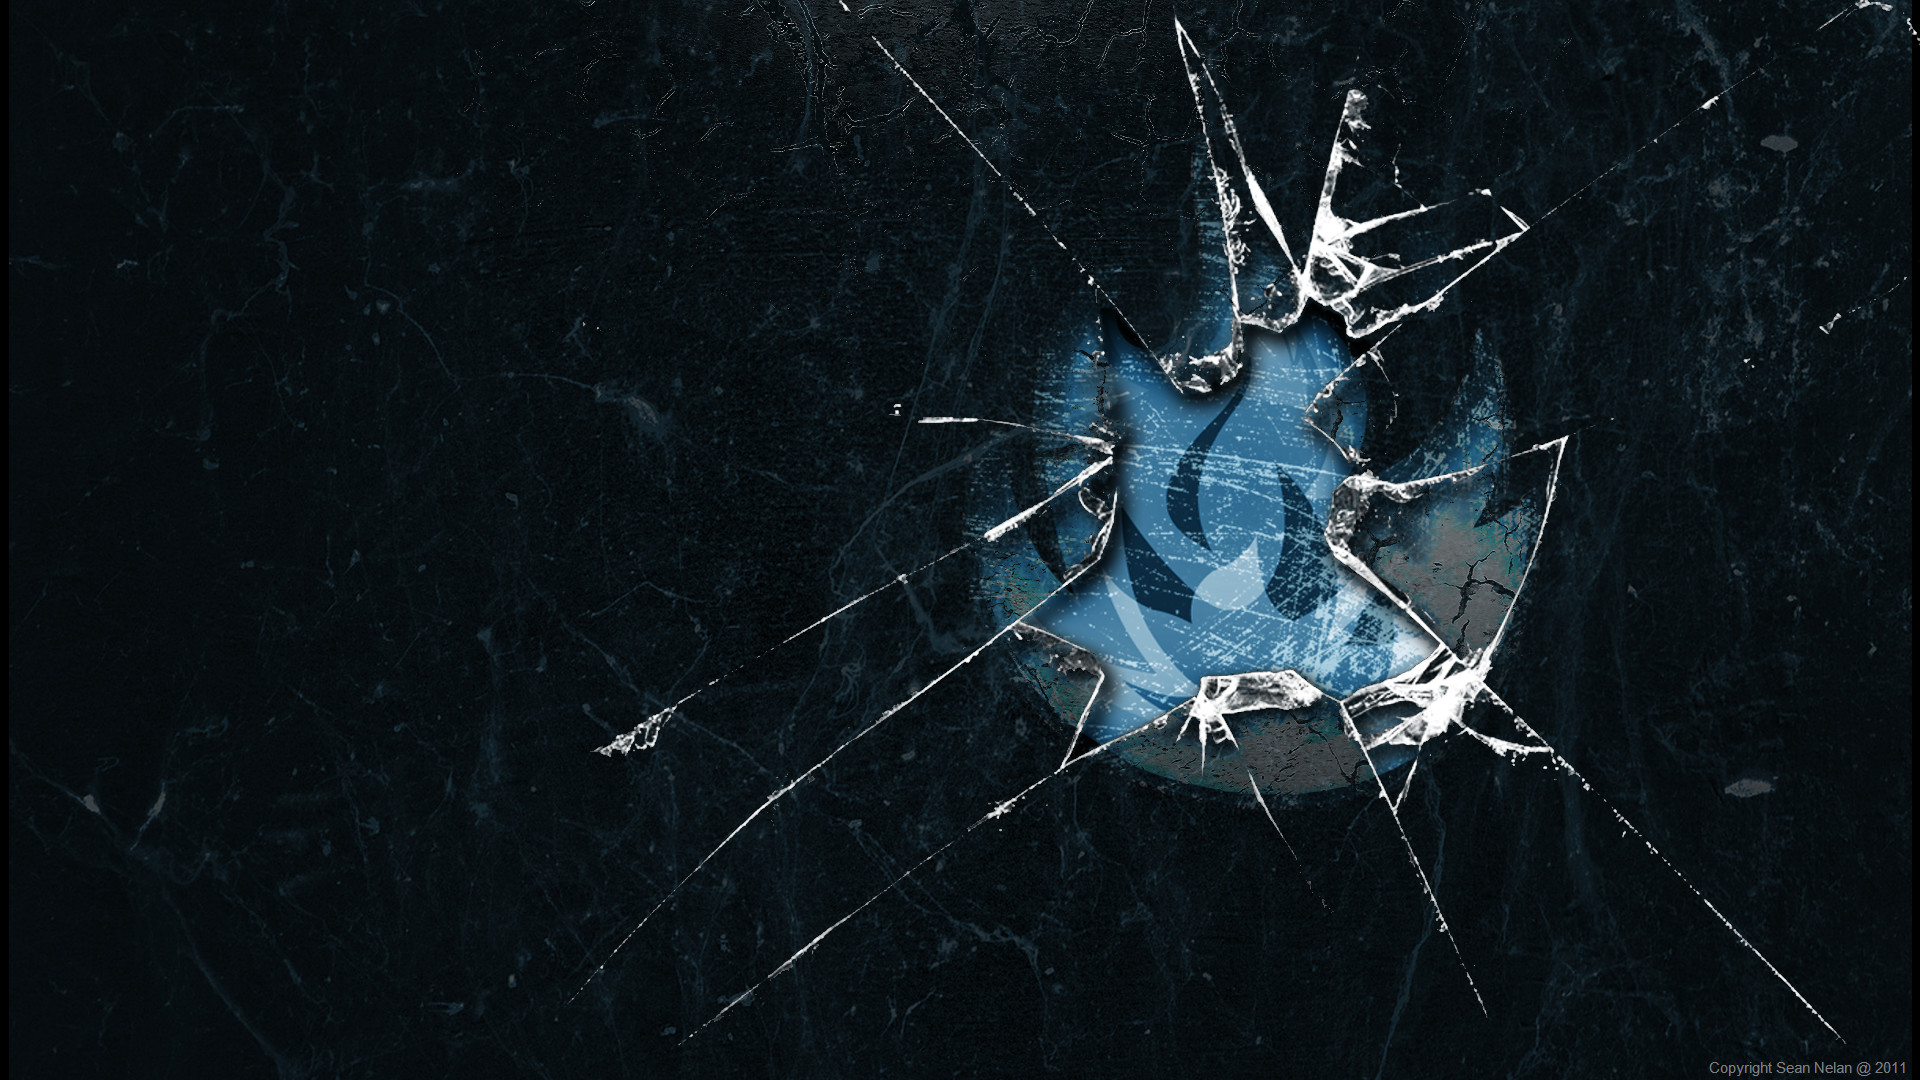 1920x1200 Cracked Screen Windows Exclusive HD Wallpapers 2261